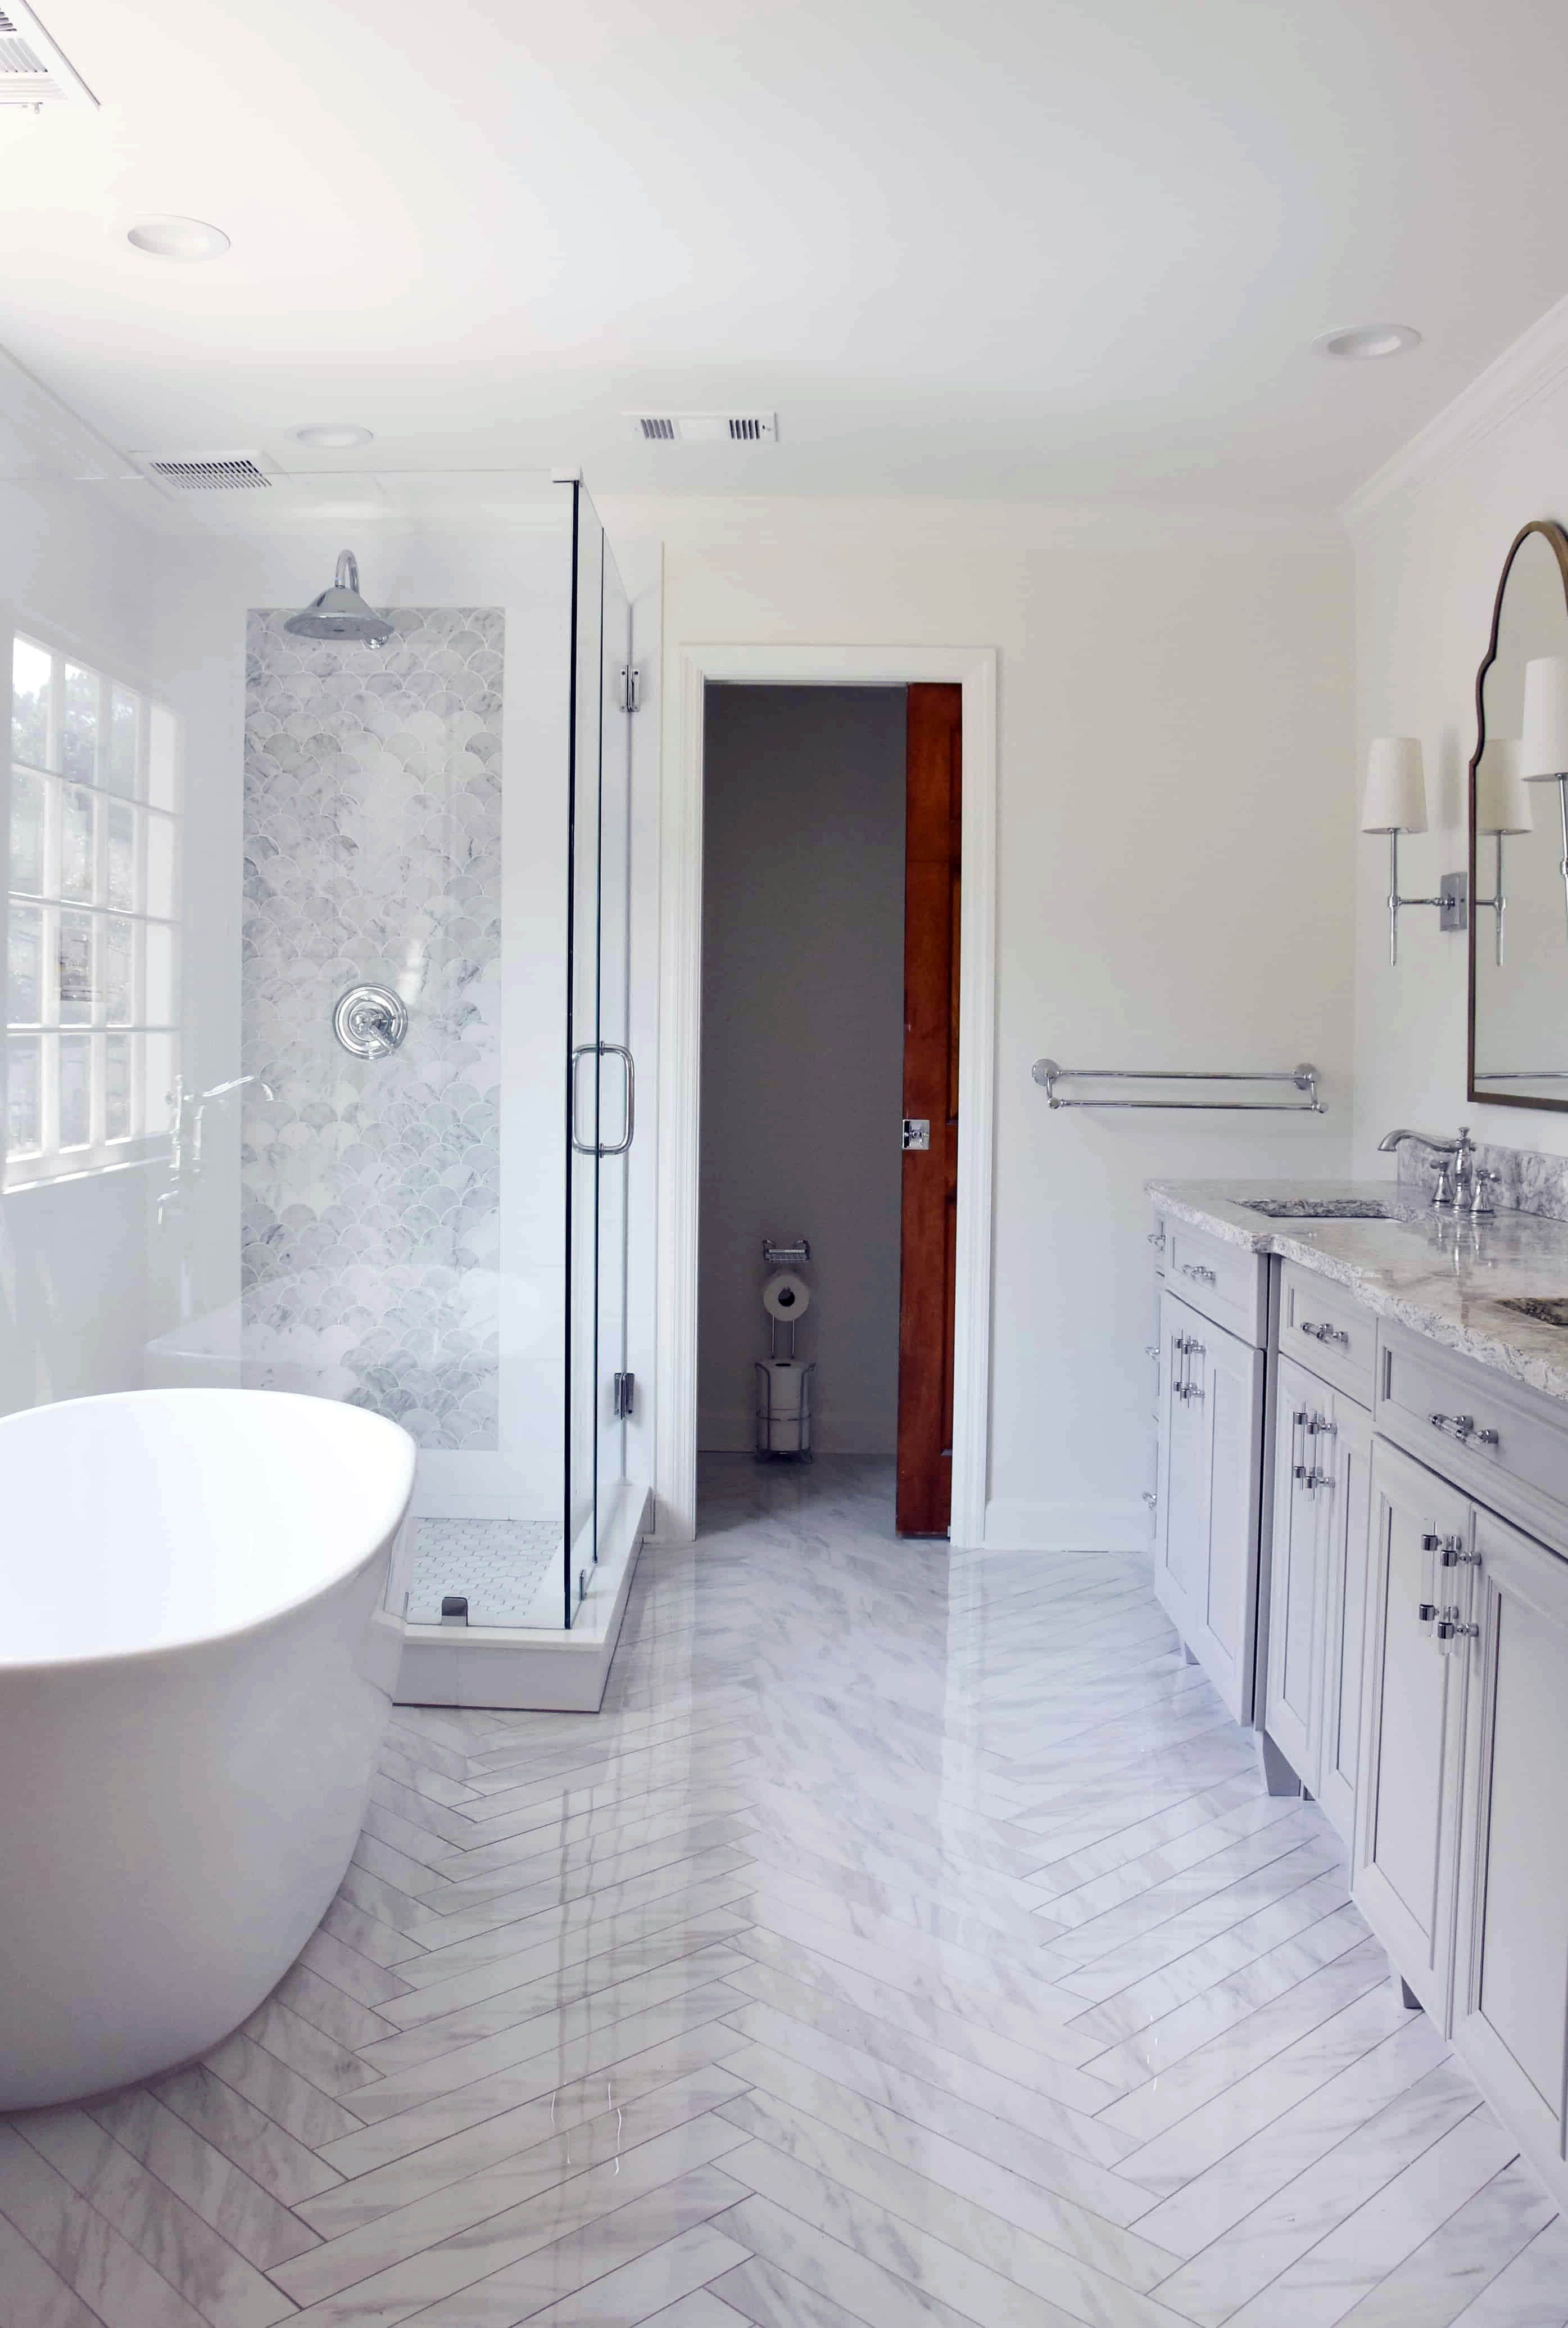 Impressive Houzz Master Bathroom Tile Ideas On This Favorite Site Budget Bathroom Remodel Bathrooms Remodel Master Bathroom Design